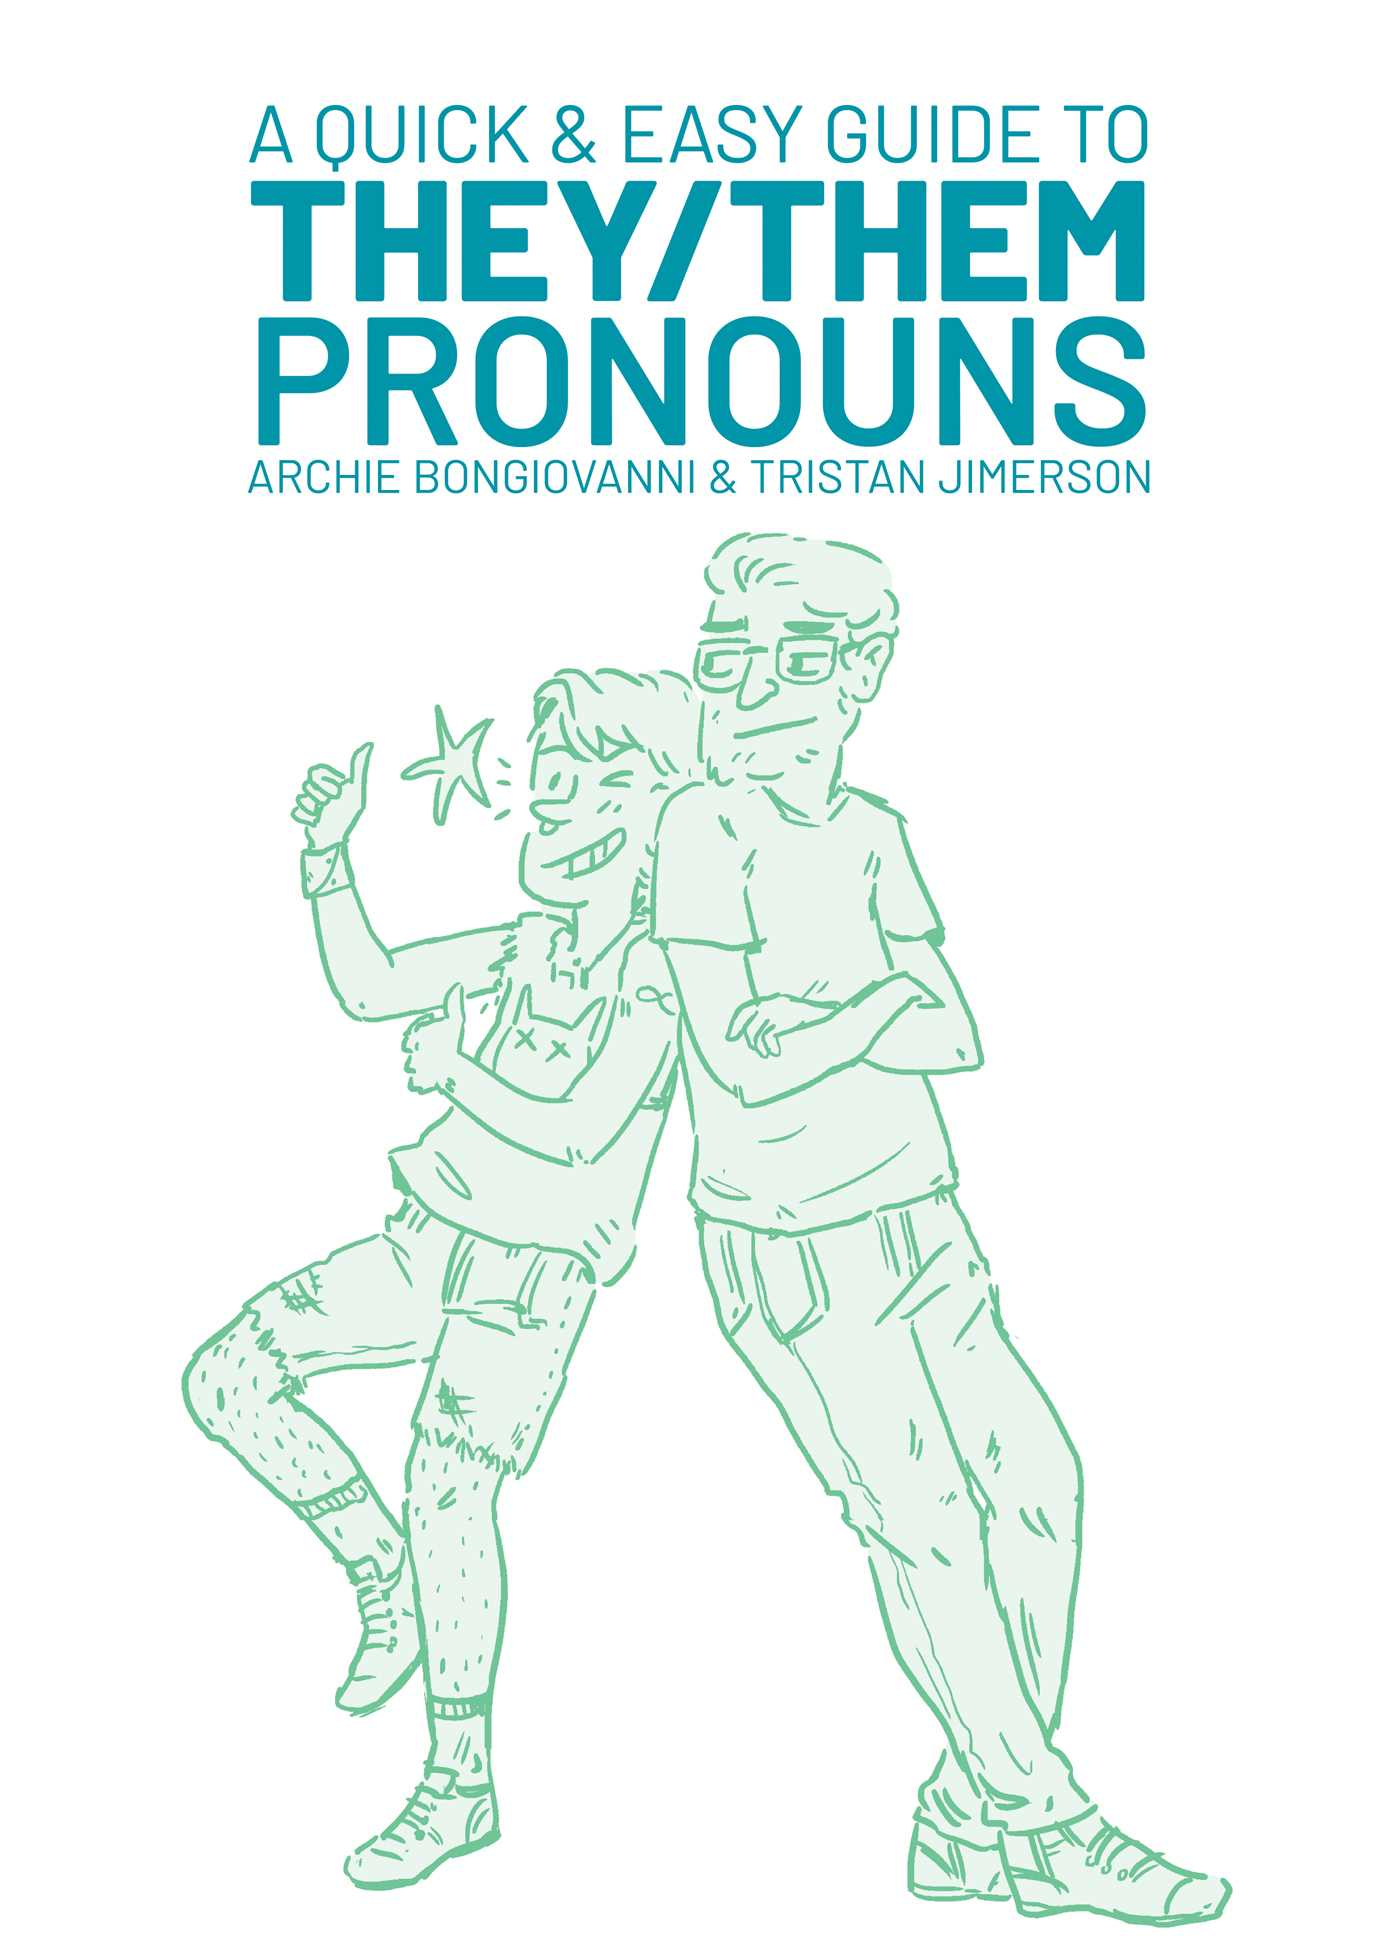 A quick easy guide to they them pronouns 9781620104996 hr